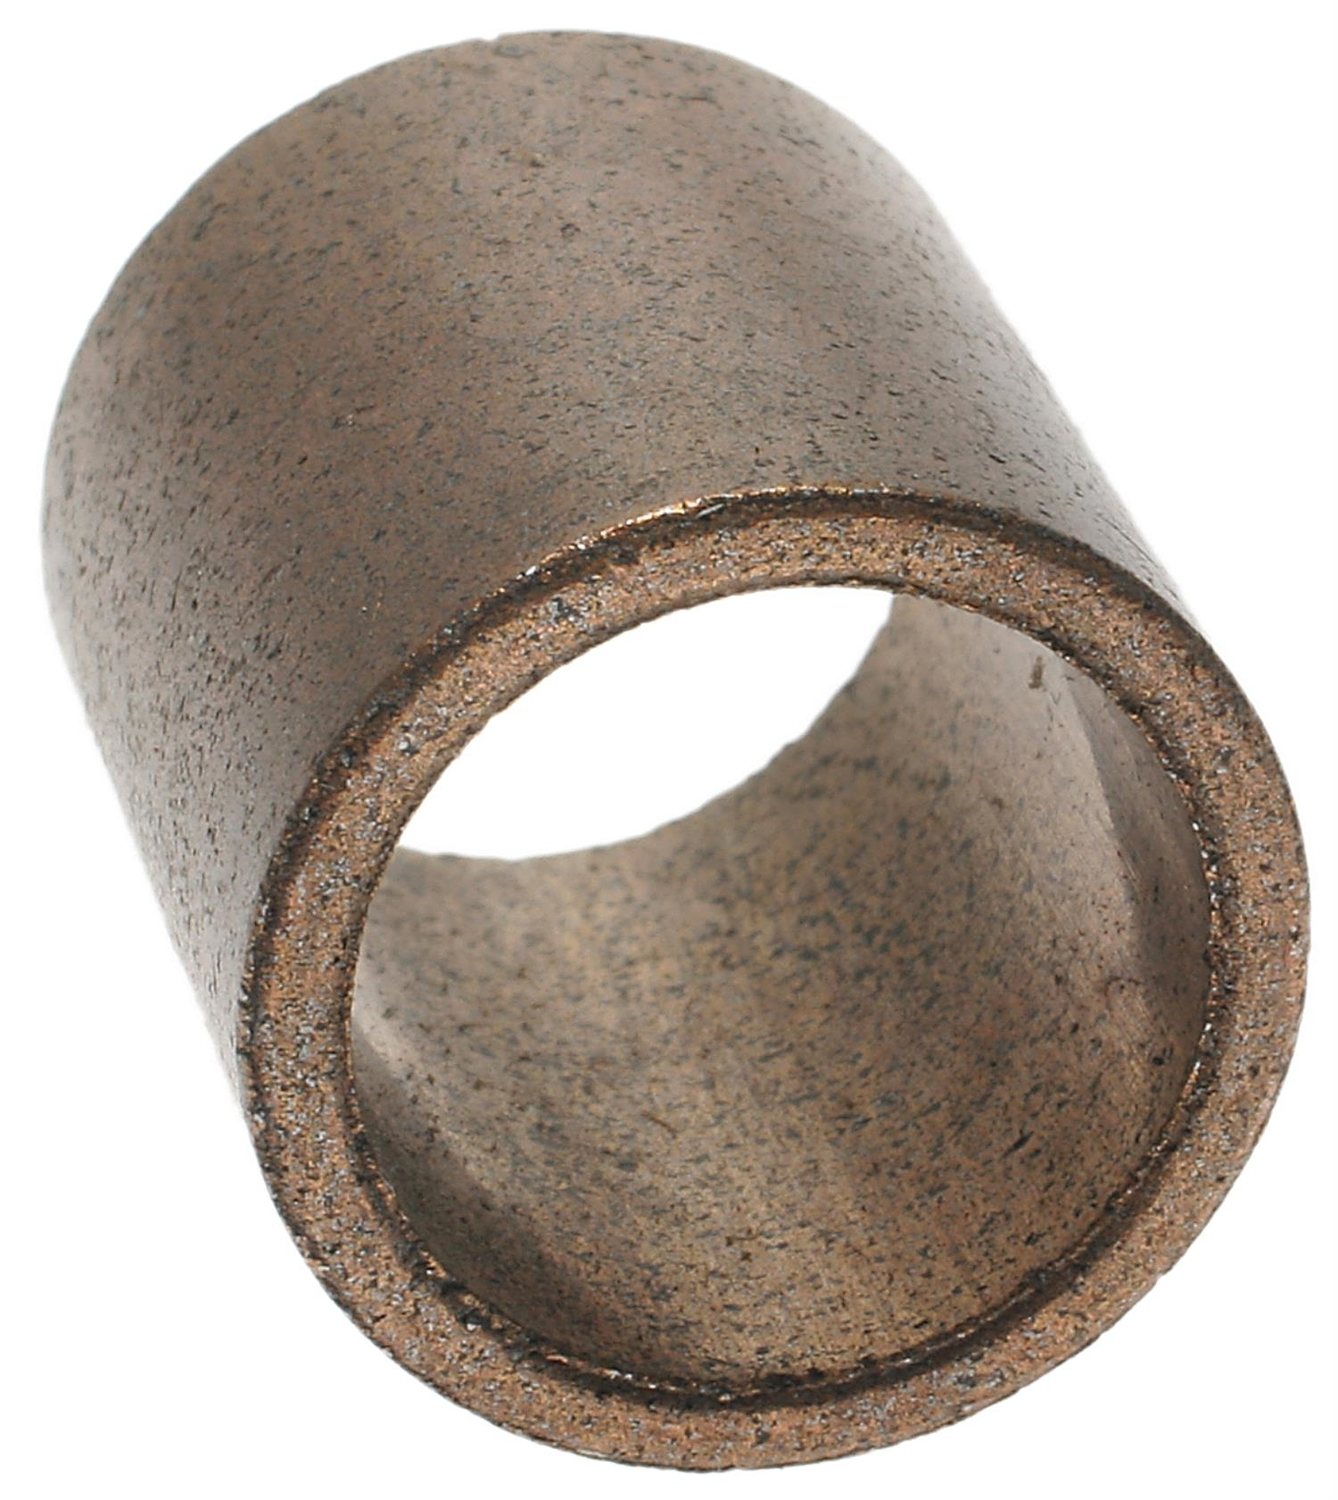 ACDELCO GOLD/PROFESSIONAL - Starter Bushing - DCC F1684